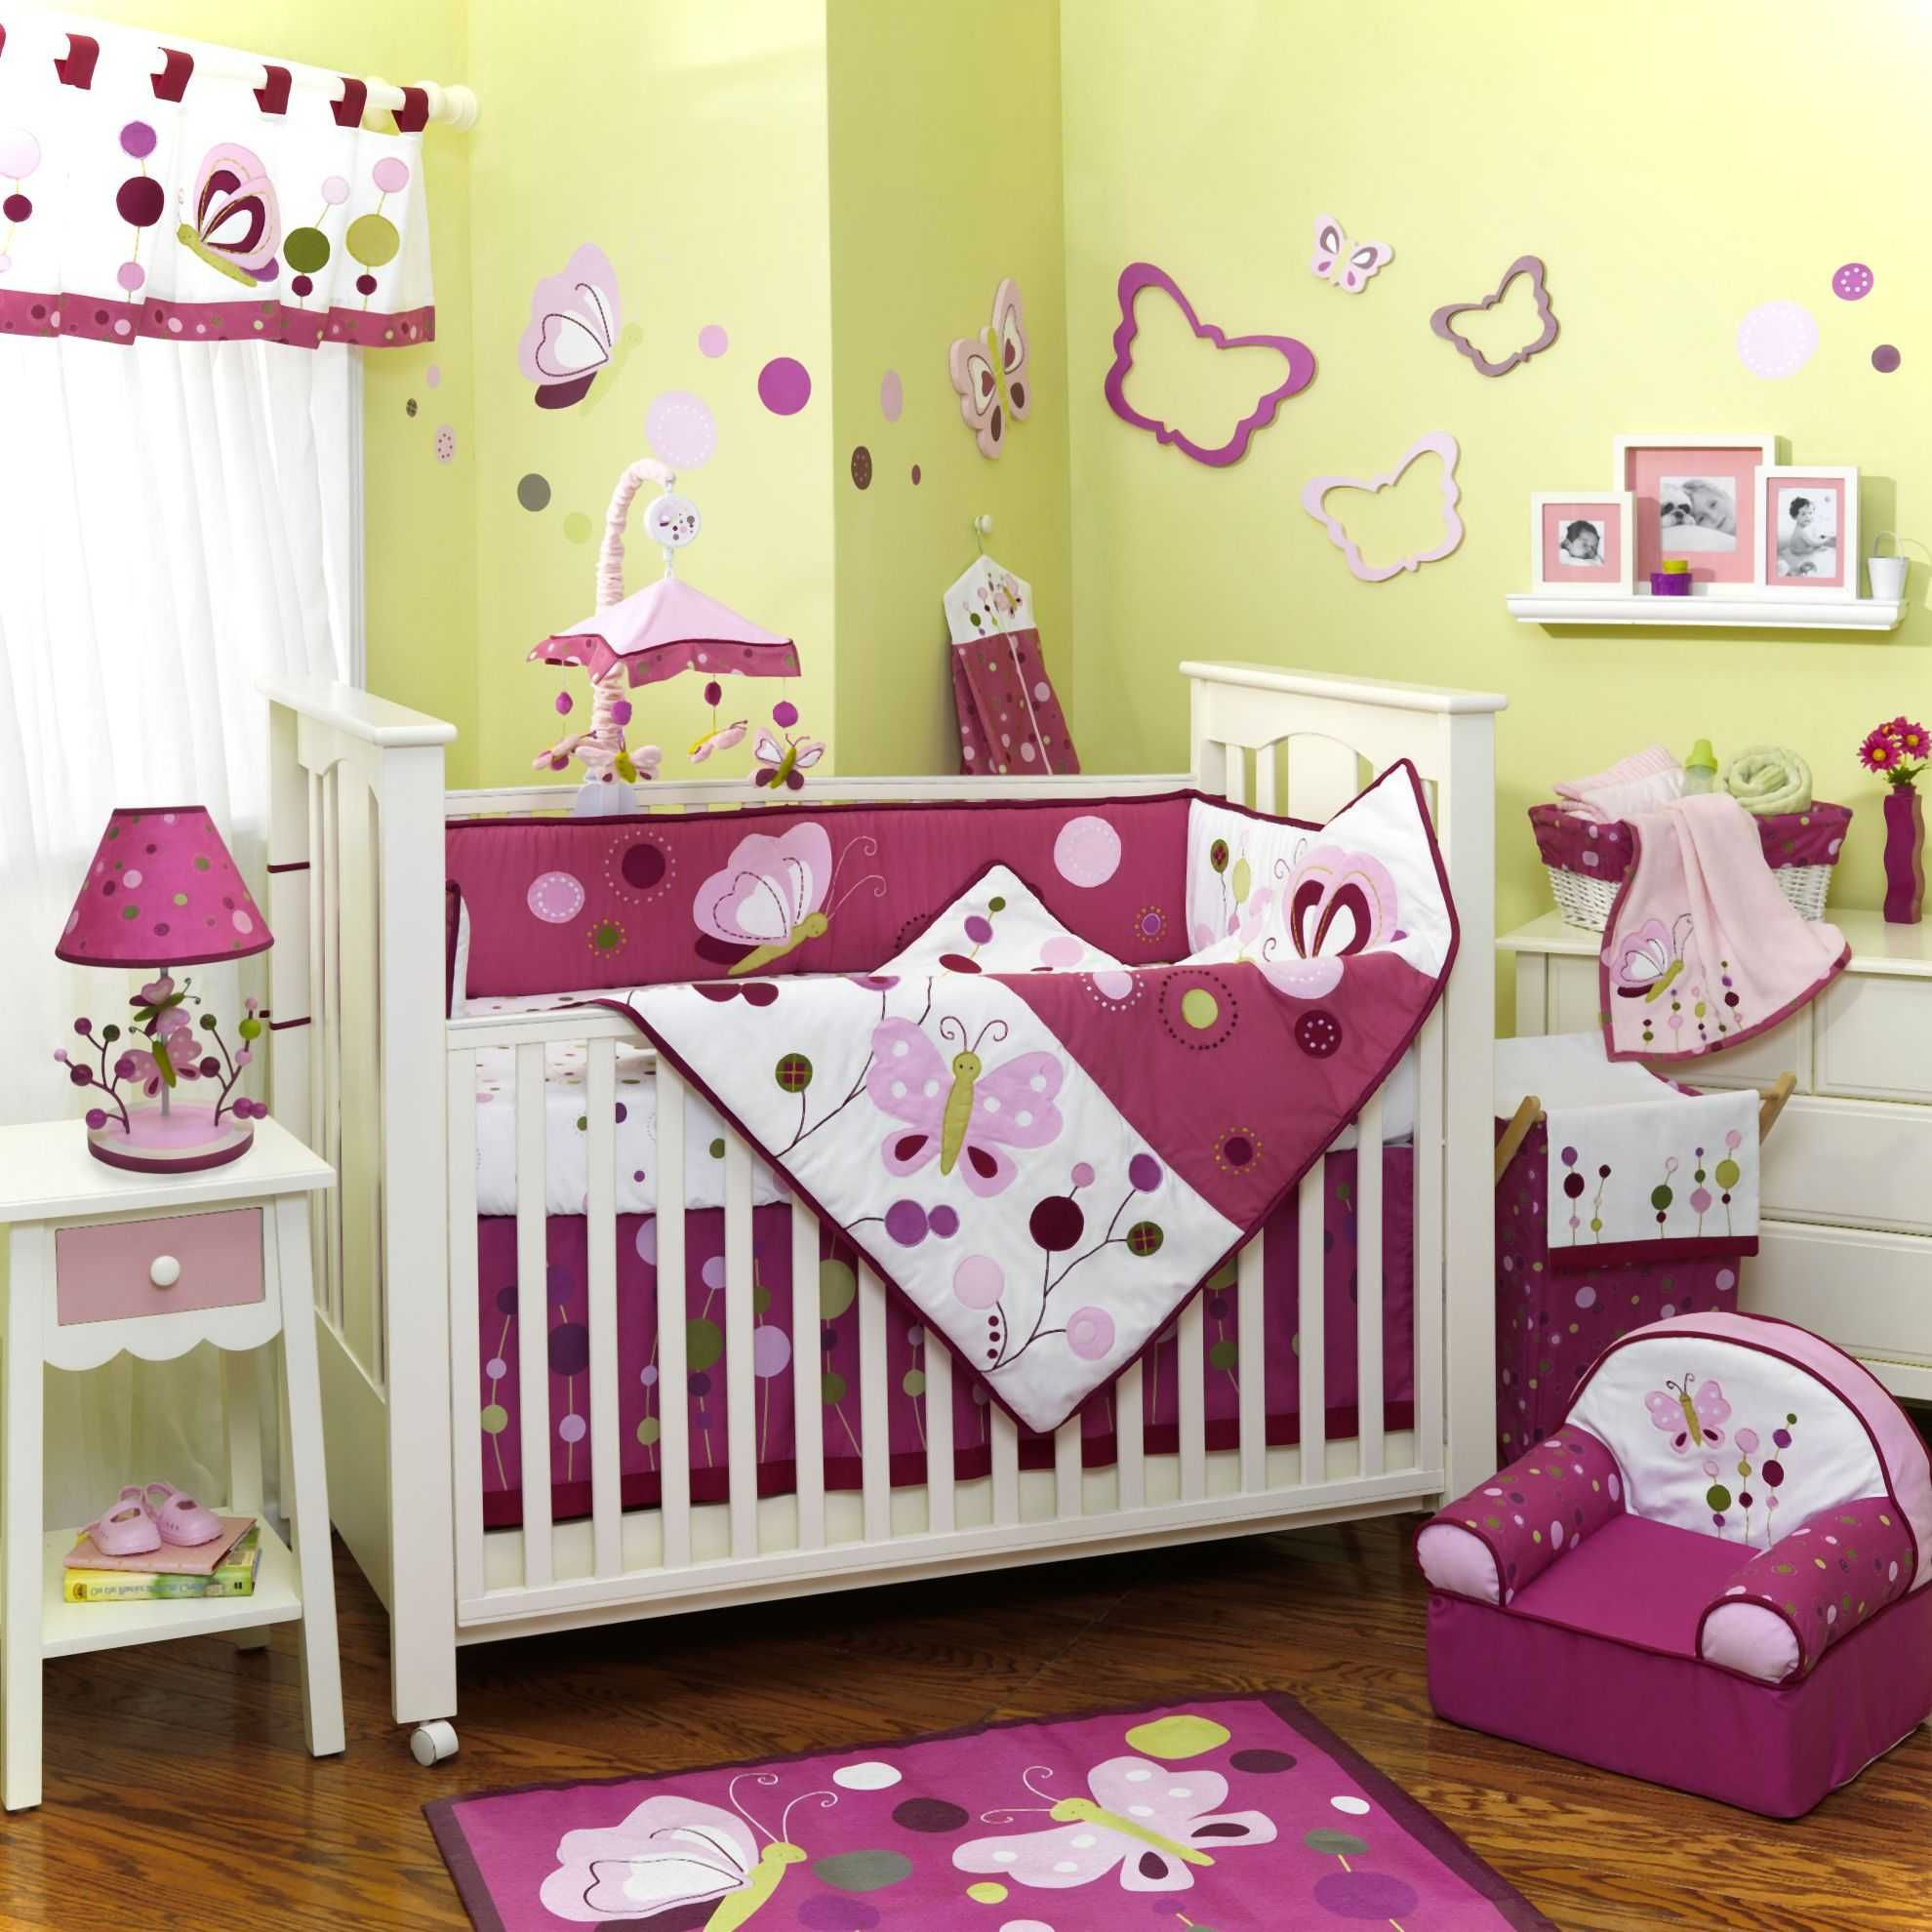 Rooms Decorations Eas Baby Girls Bedroom Decorating Decorating Bedroom Images Baby Room Ideas (1980 1980)